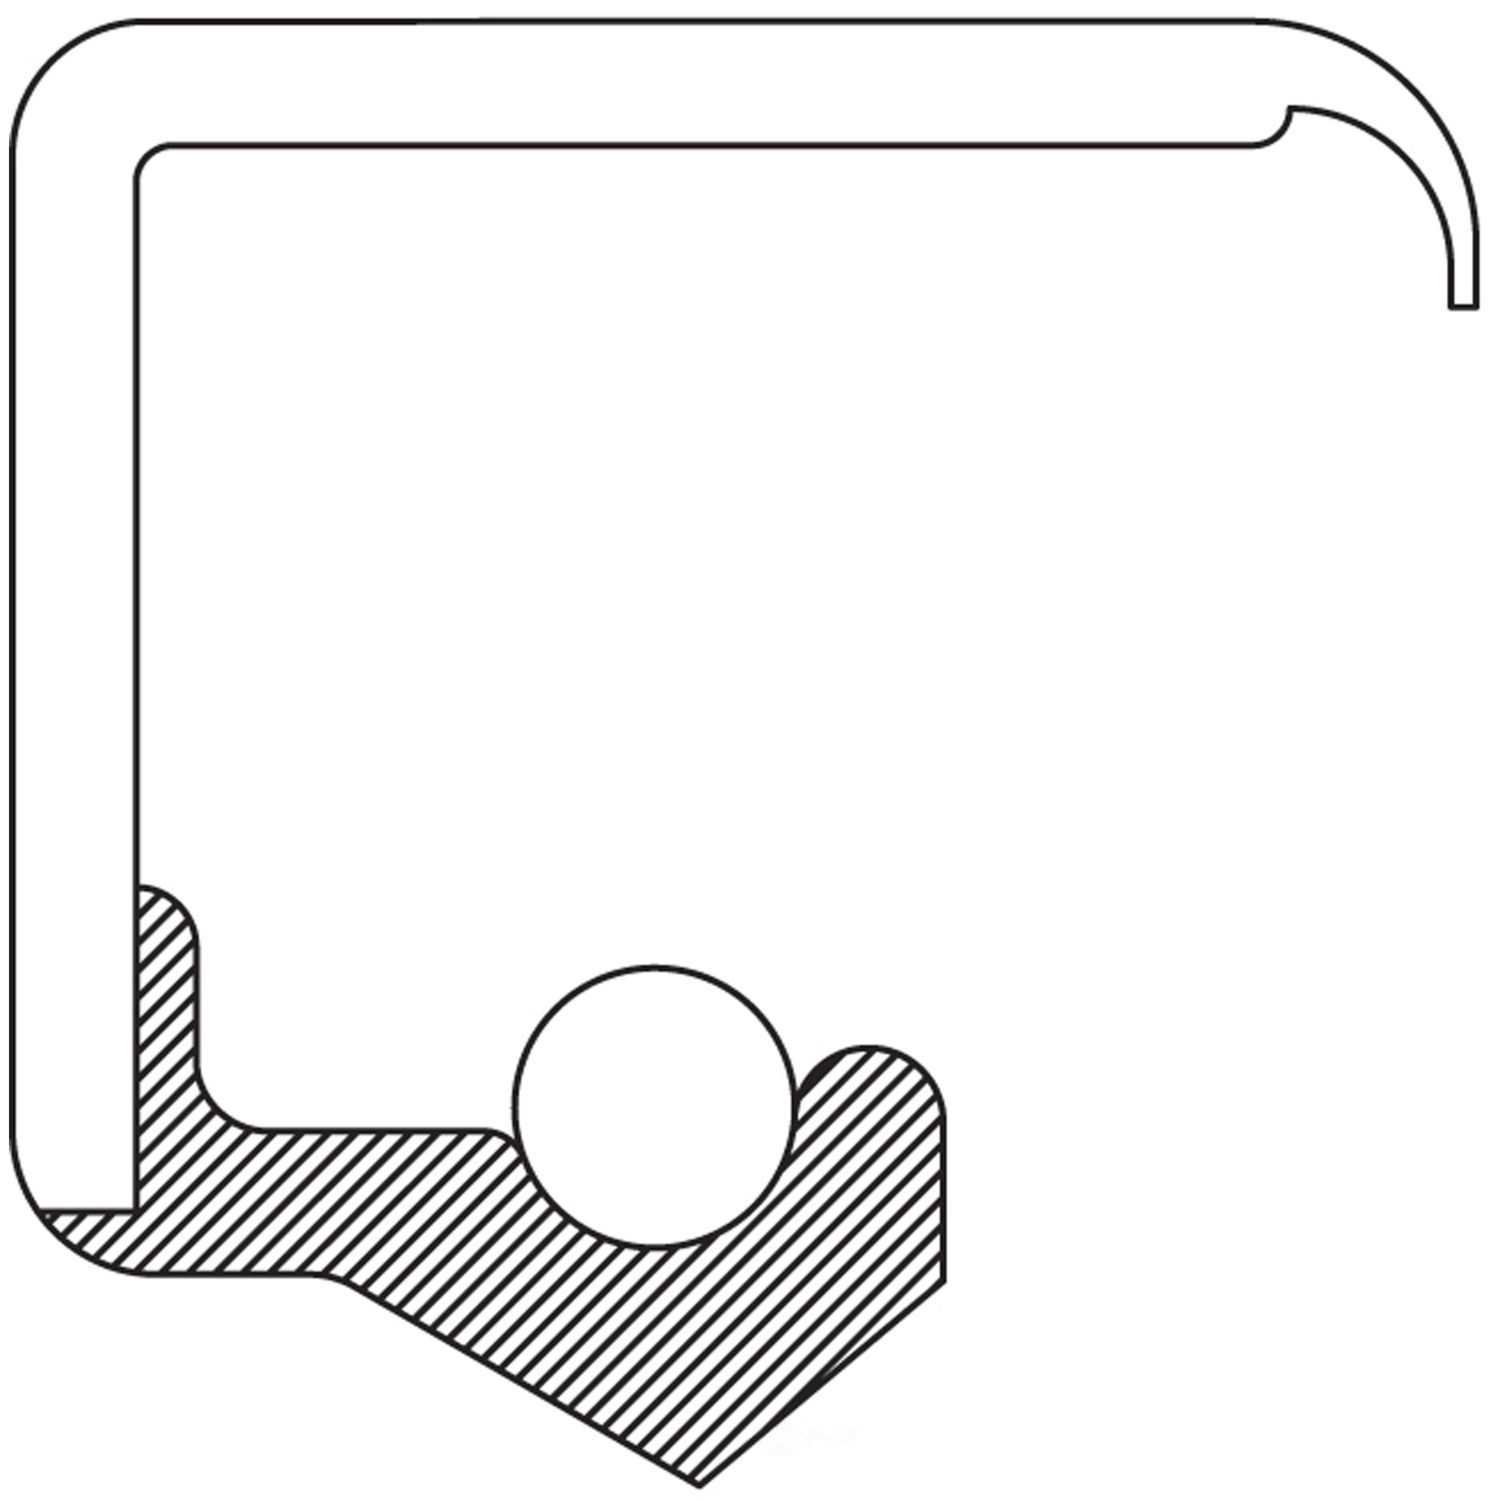 NATIONAL SEALS - Auto Trans Extension Housing Seal - NAT 710058